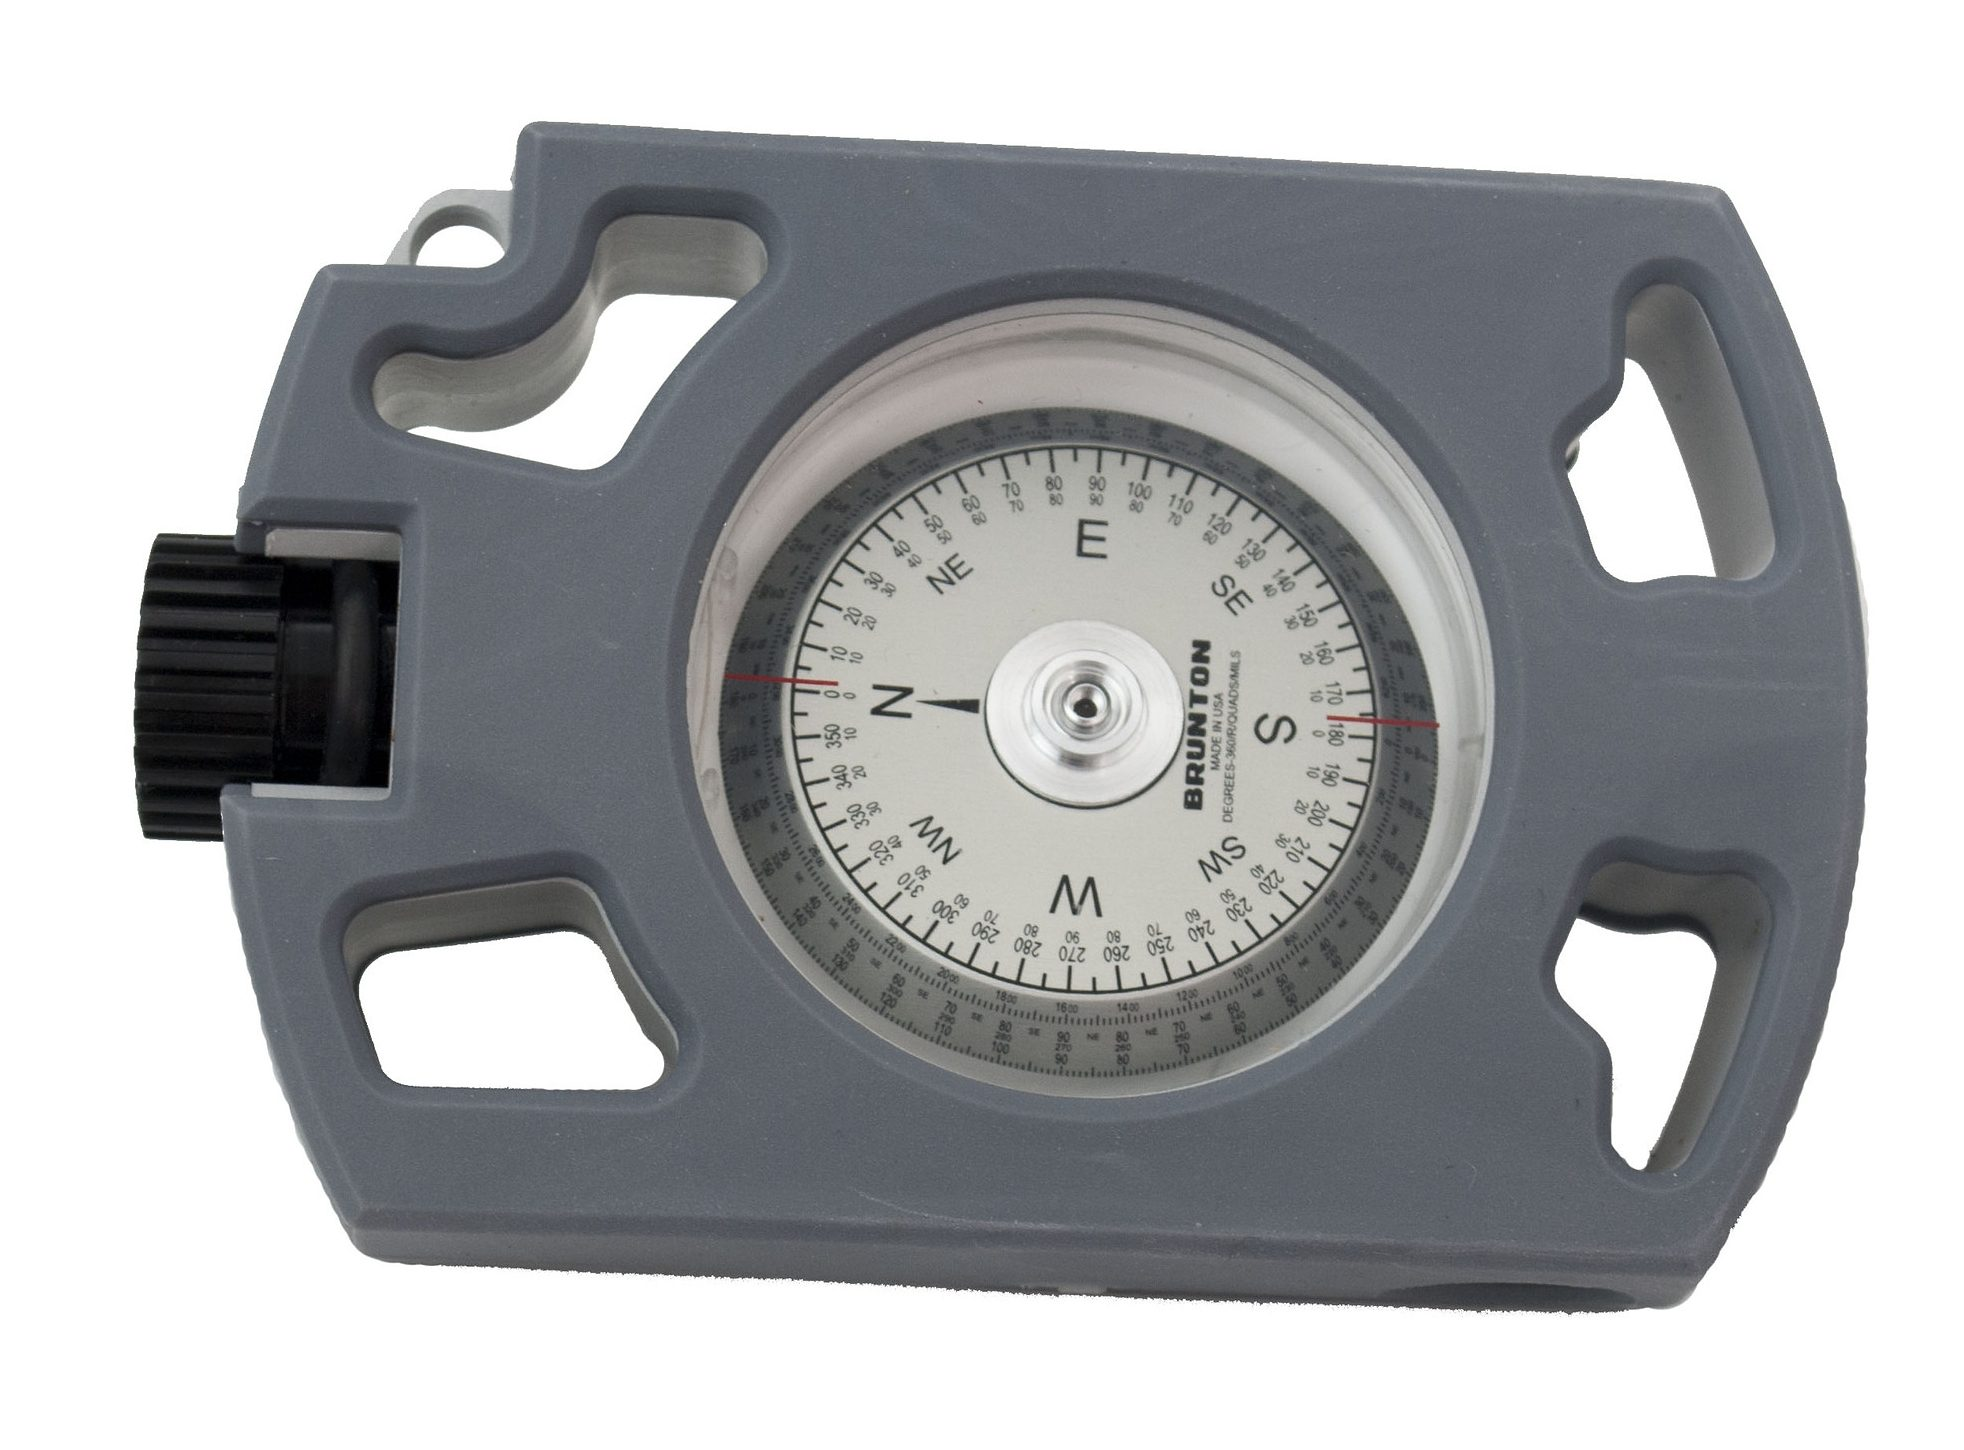 Brunton Kompass »Omni-Sight Sighting Compass (includes all scales)«